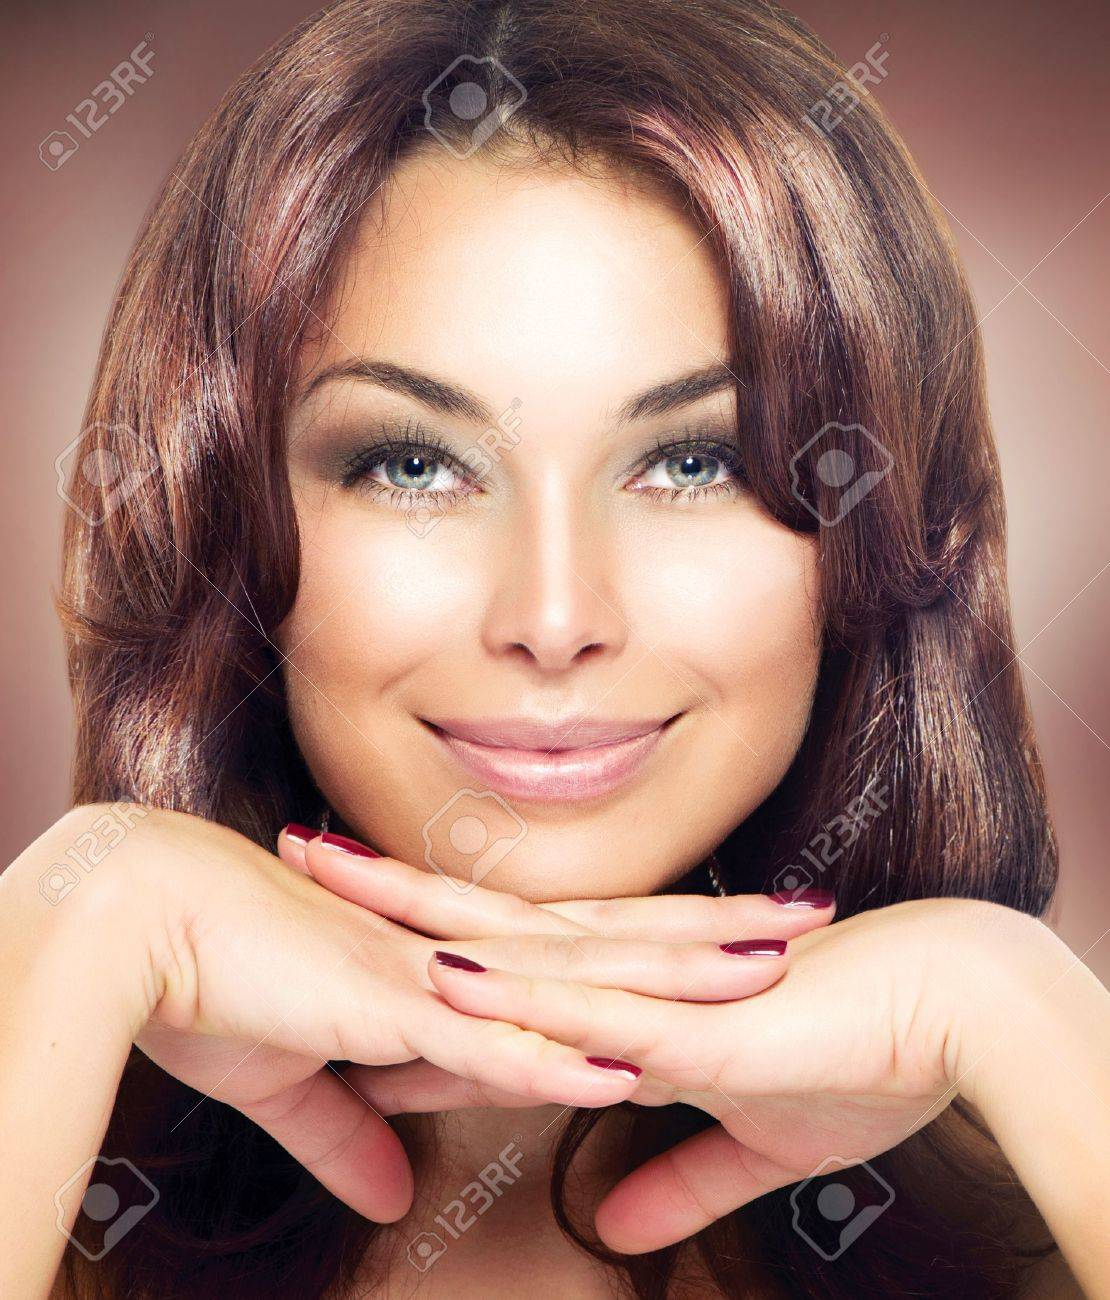 Beauty Woman Portrait  Beautiful Makeup Stock Photo - 17535808